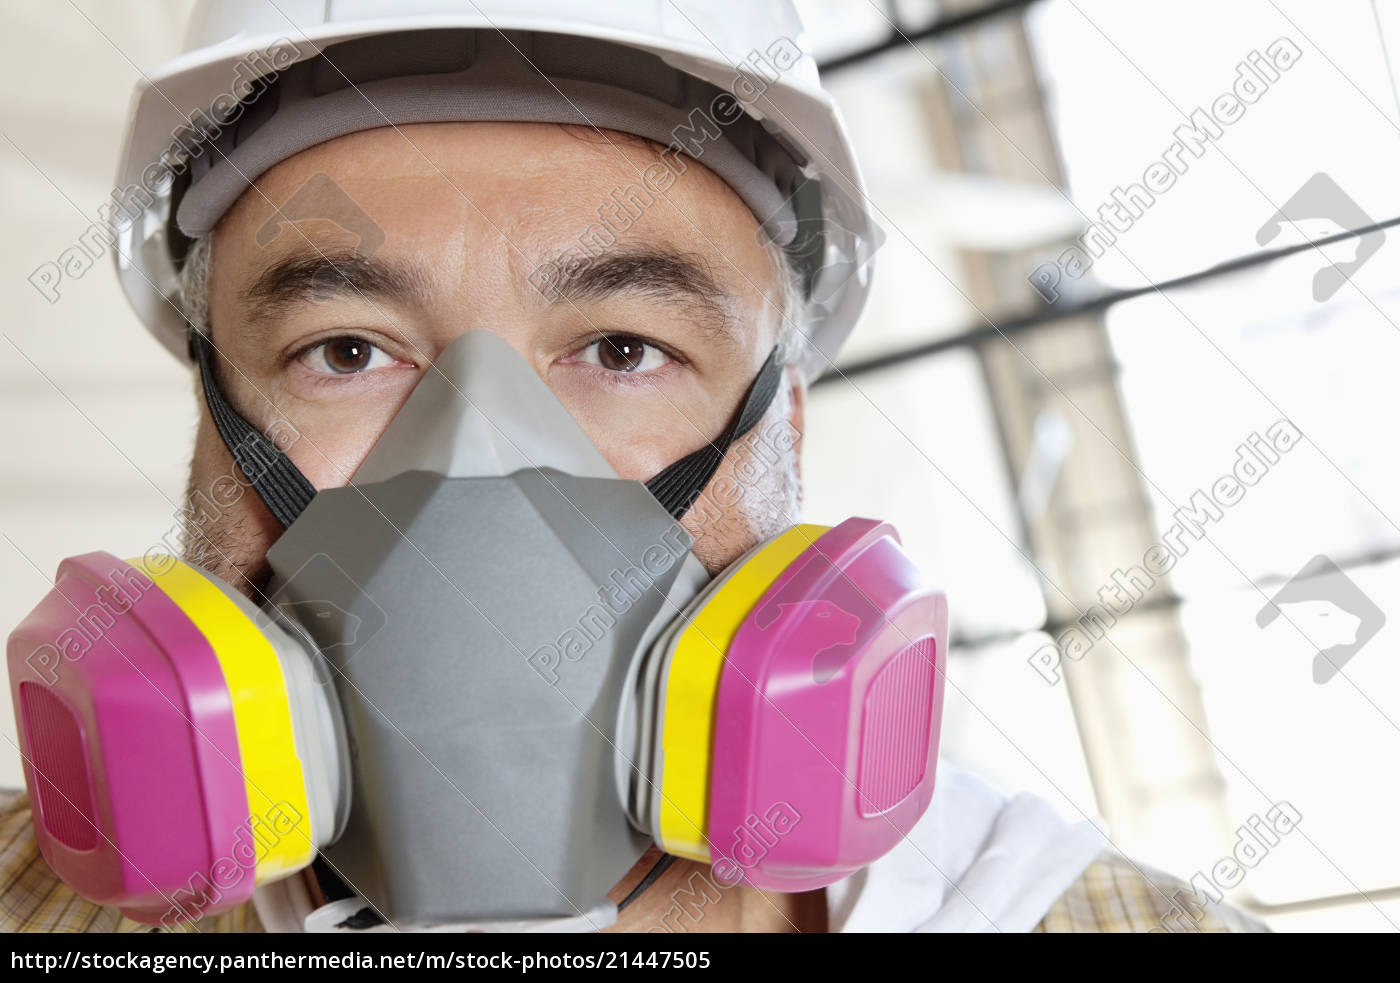 21447505 Wearing Mask Stock Portrait - Construction Site Worker Male Dust Photo At Of